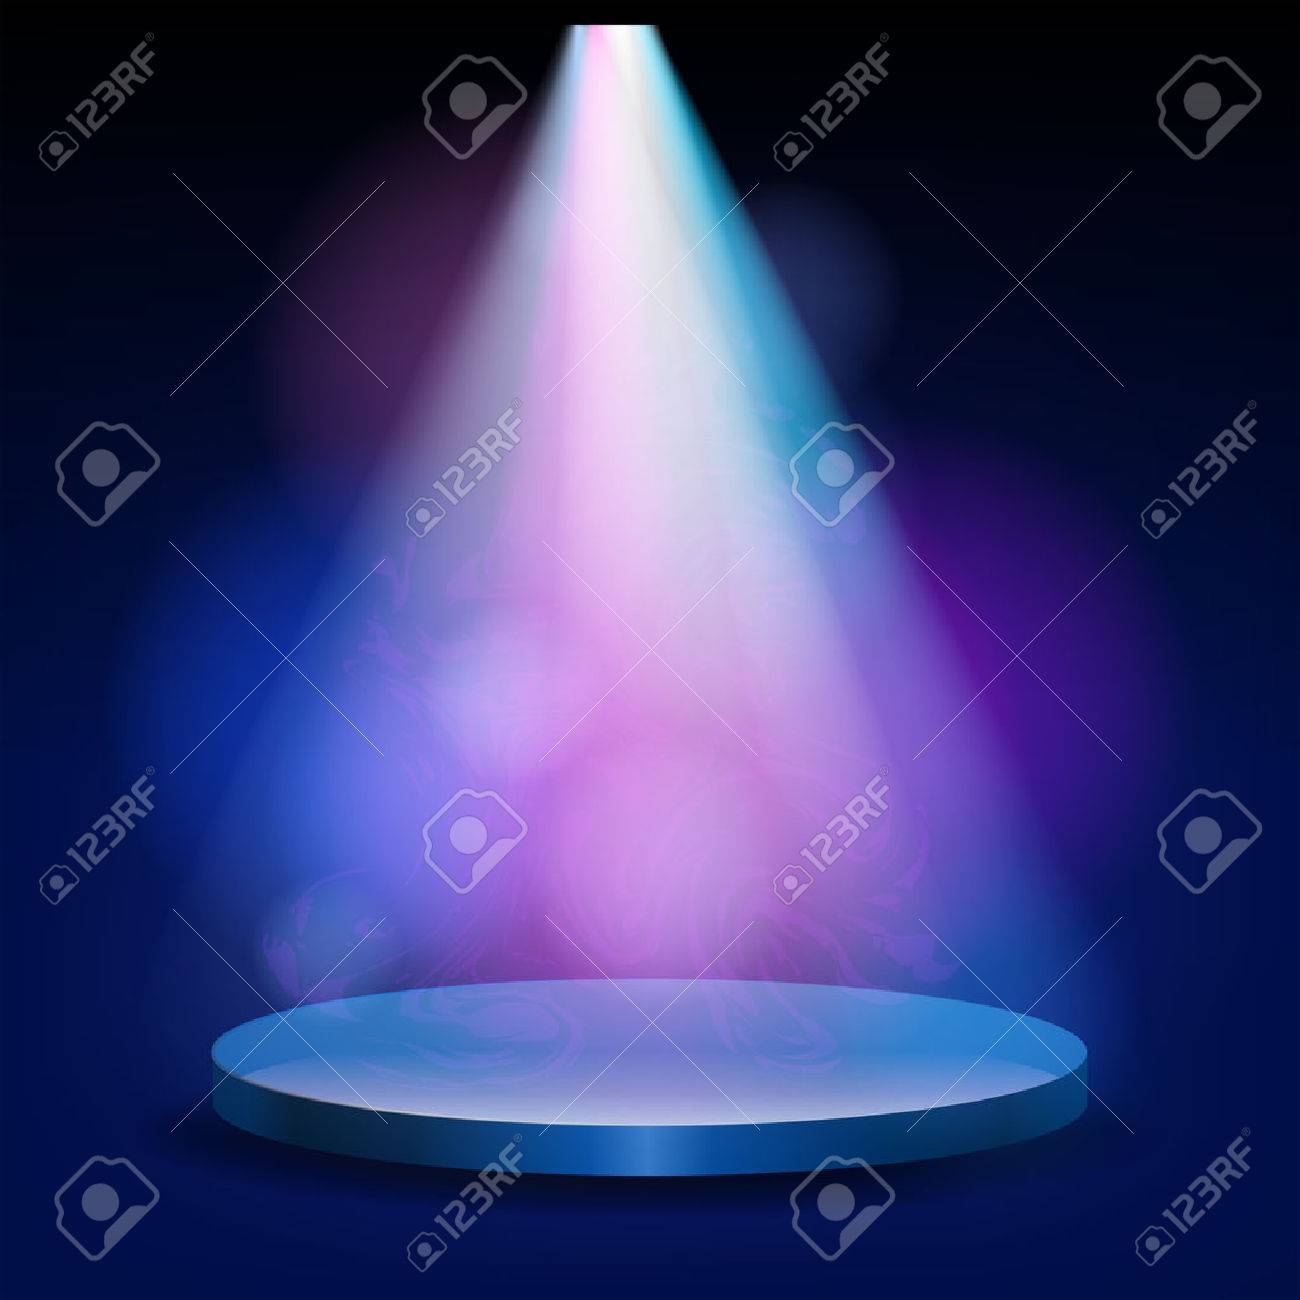 Empty Stage Lit With Lights On Blue Background The Podium Shines A Bright Spotlight